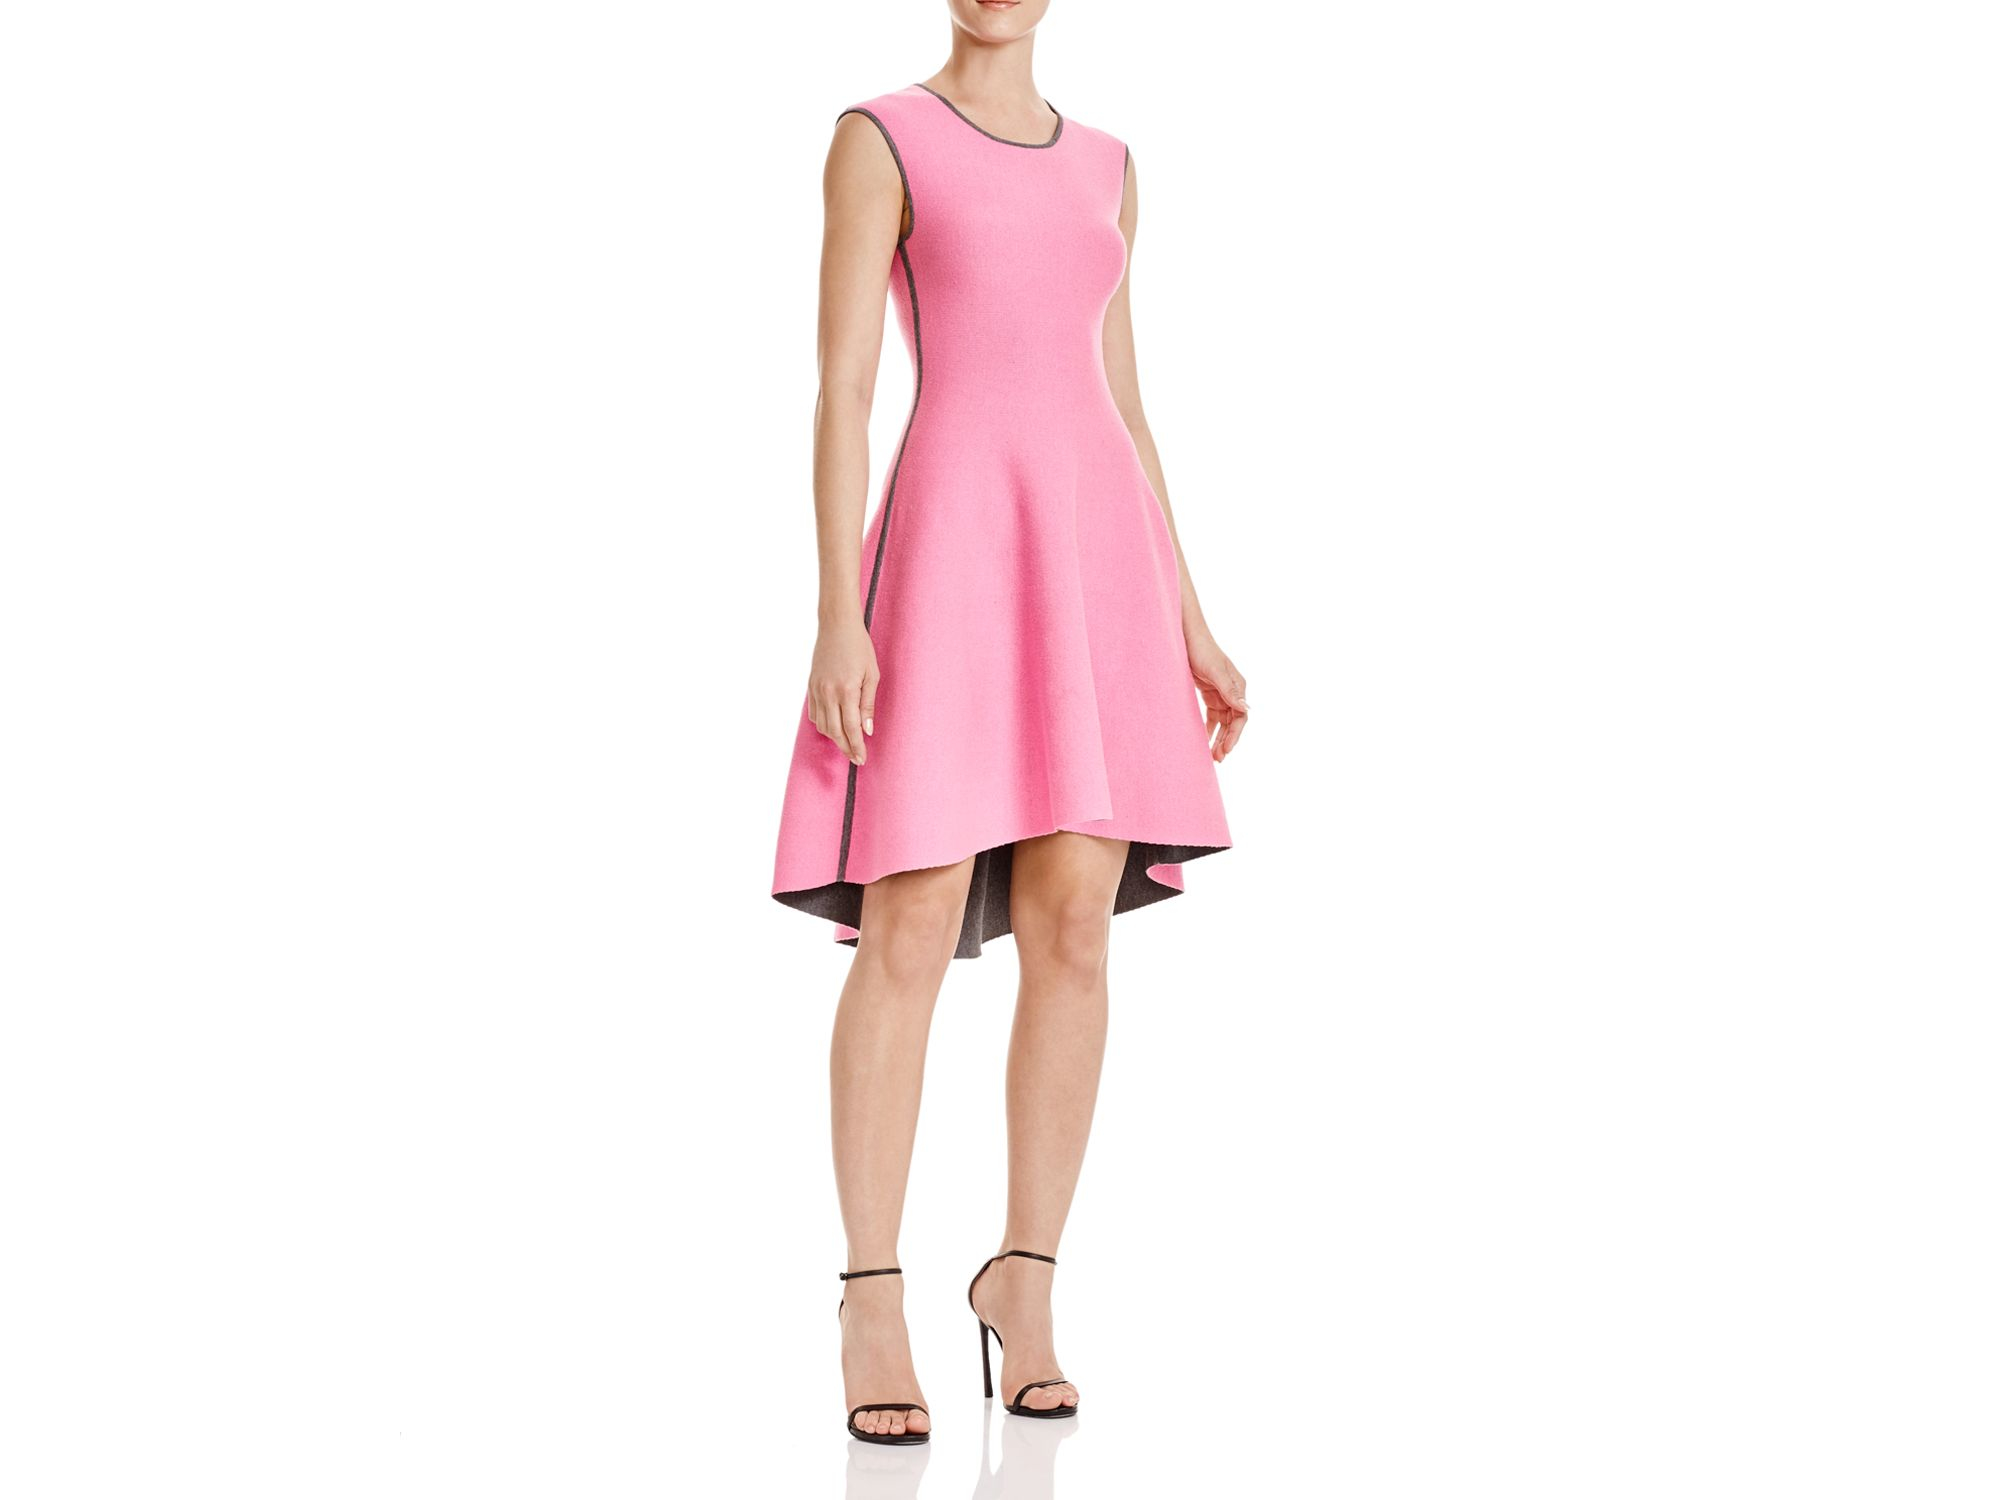 Milly Reversible Double Face Dress in Pink  Lyst